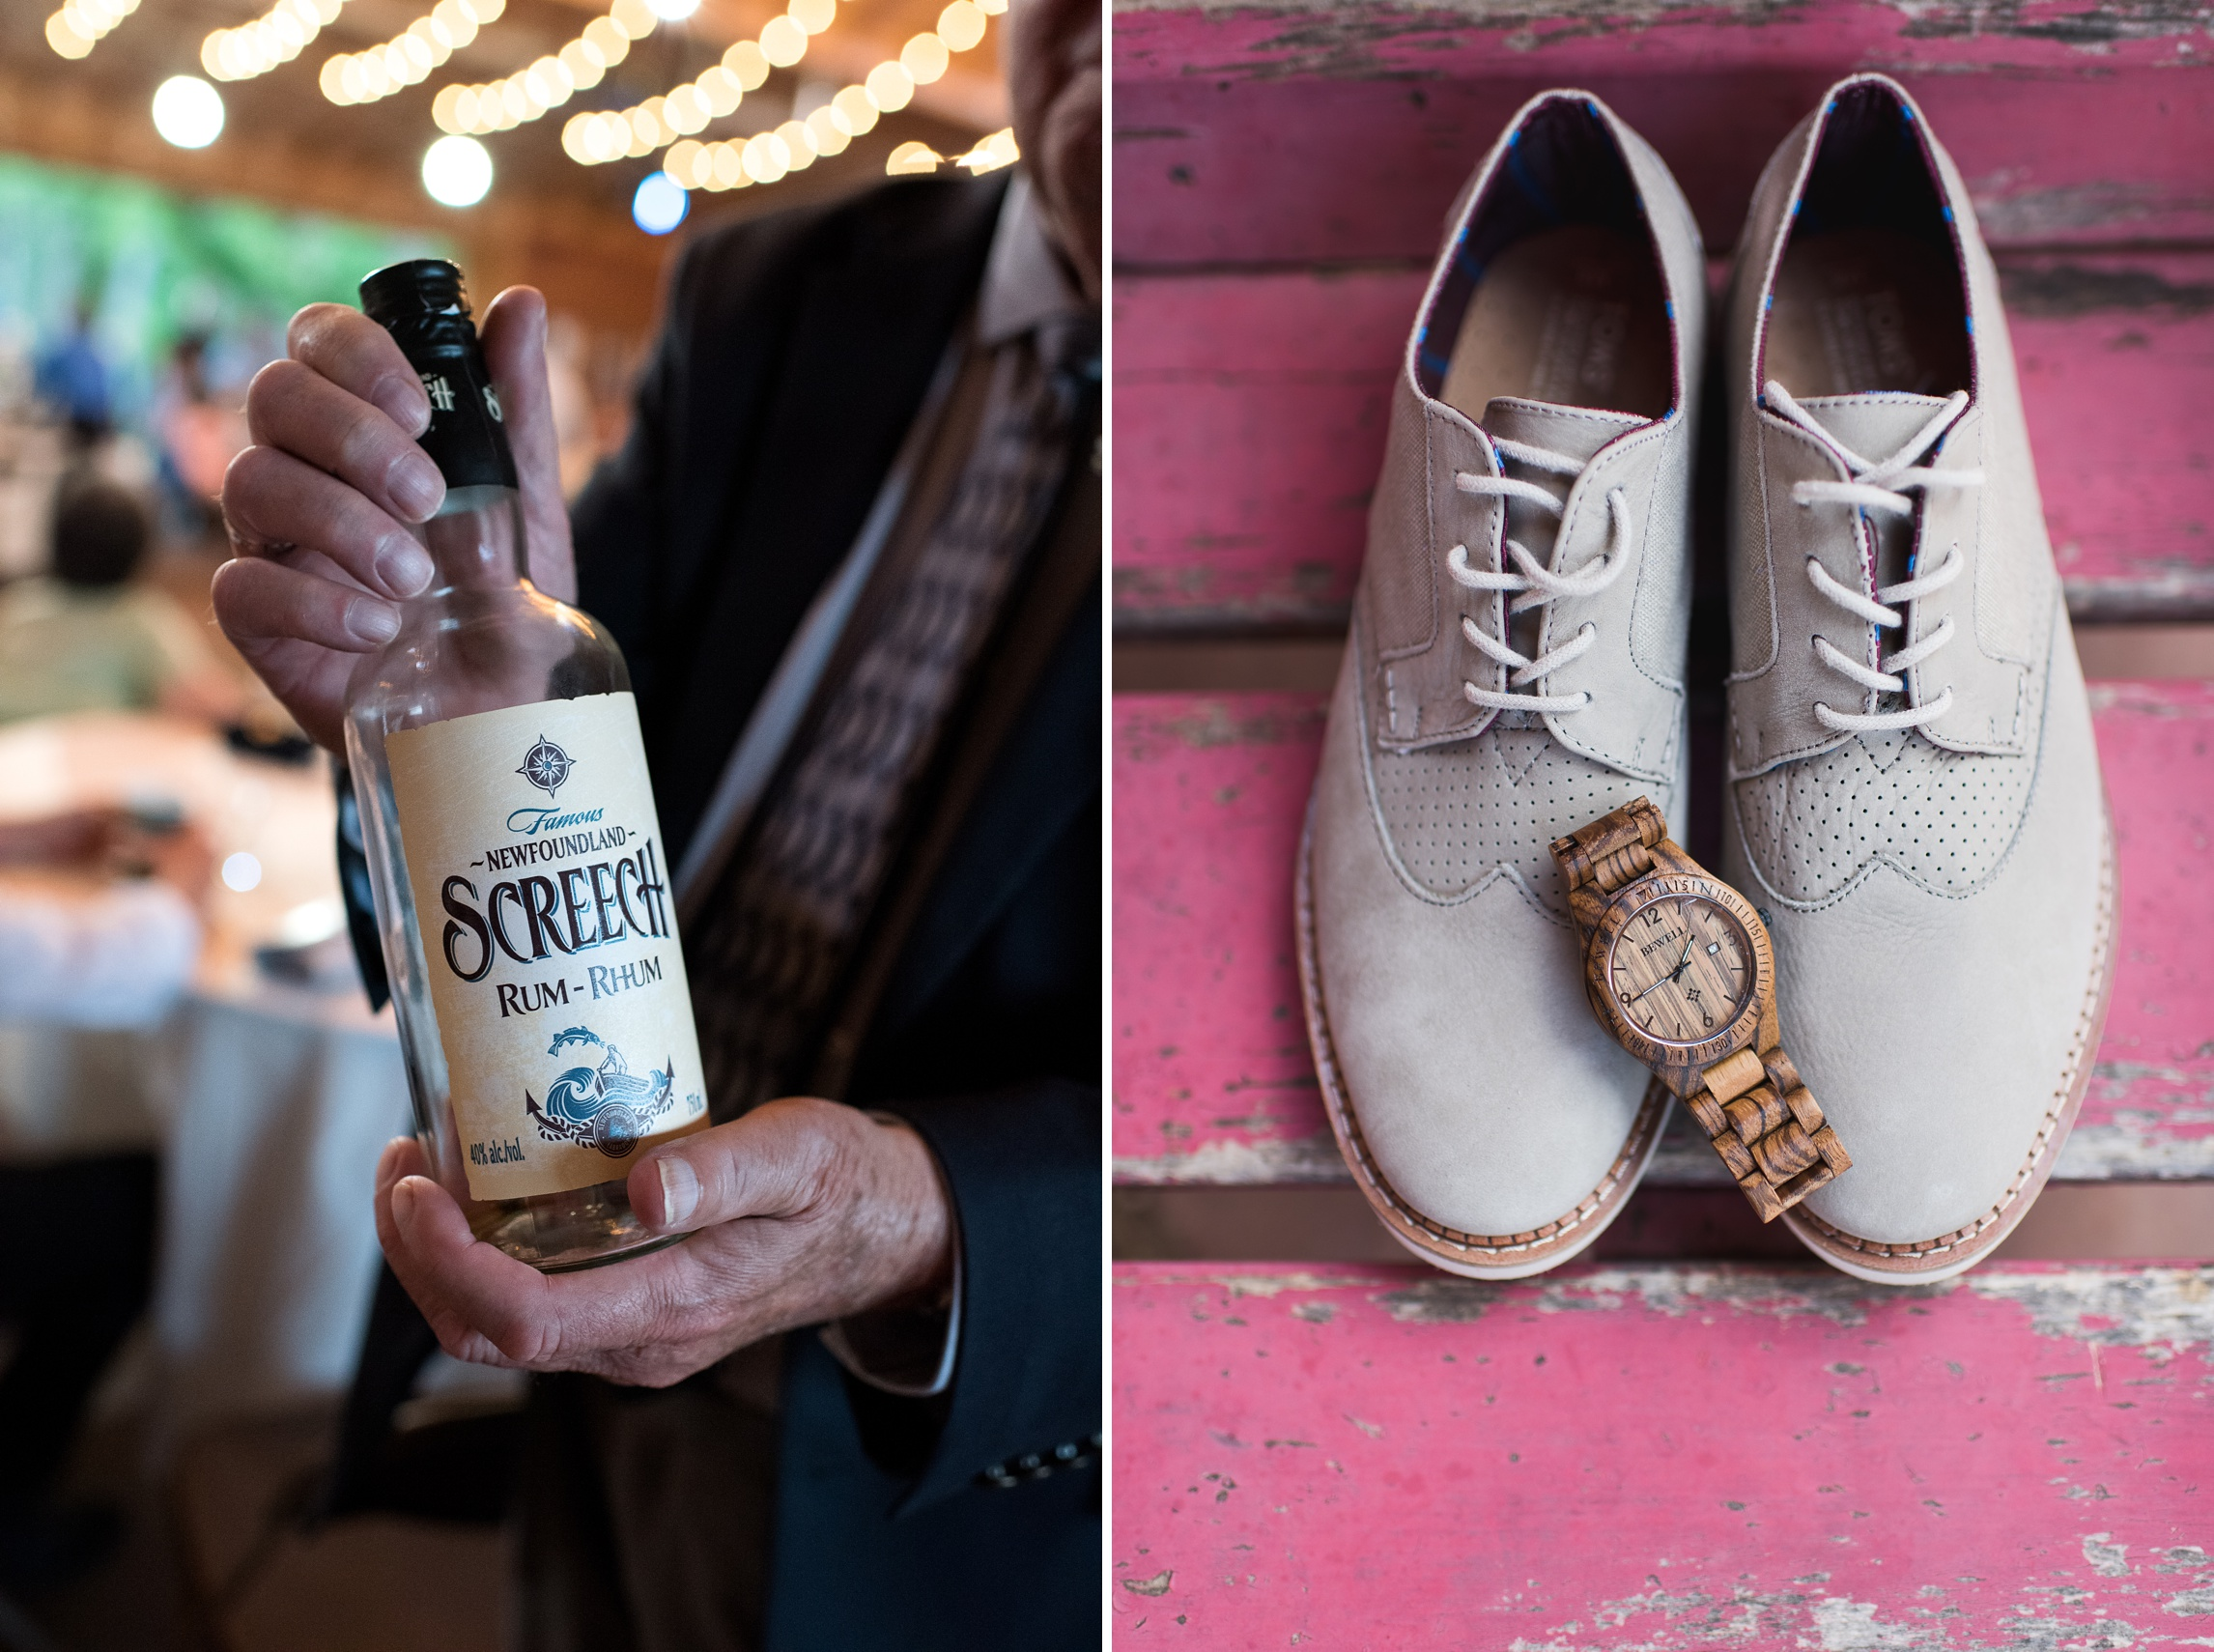 A bottle of Newfoundland Screech Rum and the grooms shoes and watch. Wedding detail photography by Sonja Salzburg of Sonja K Photography.